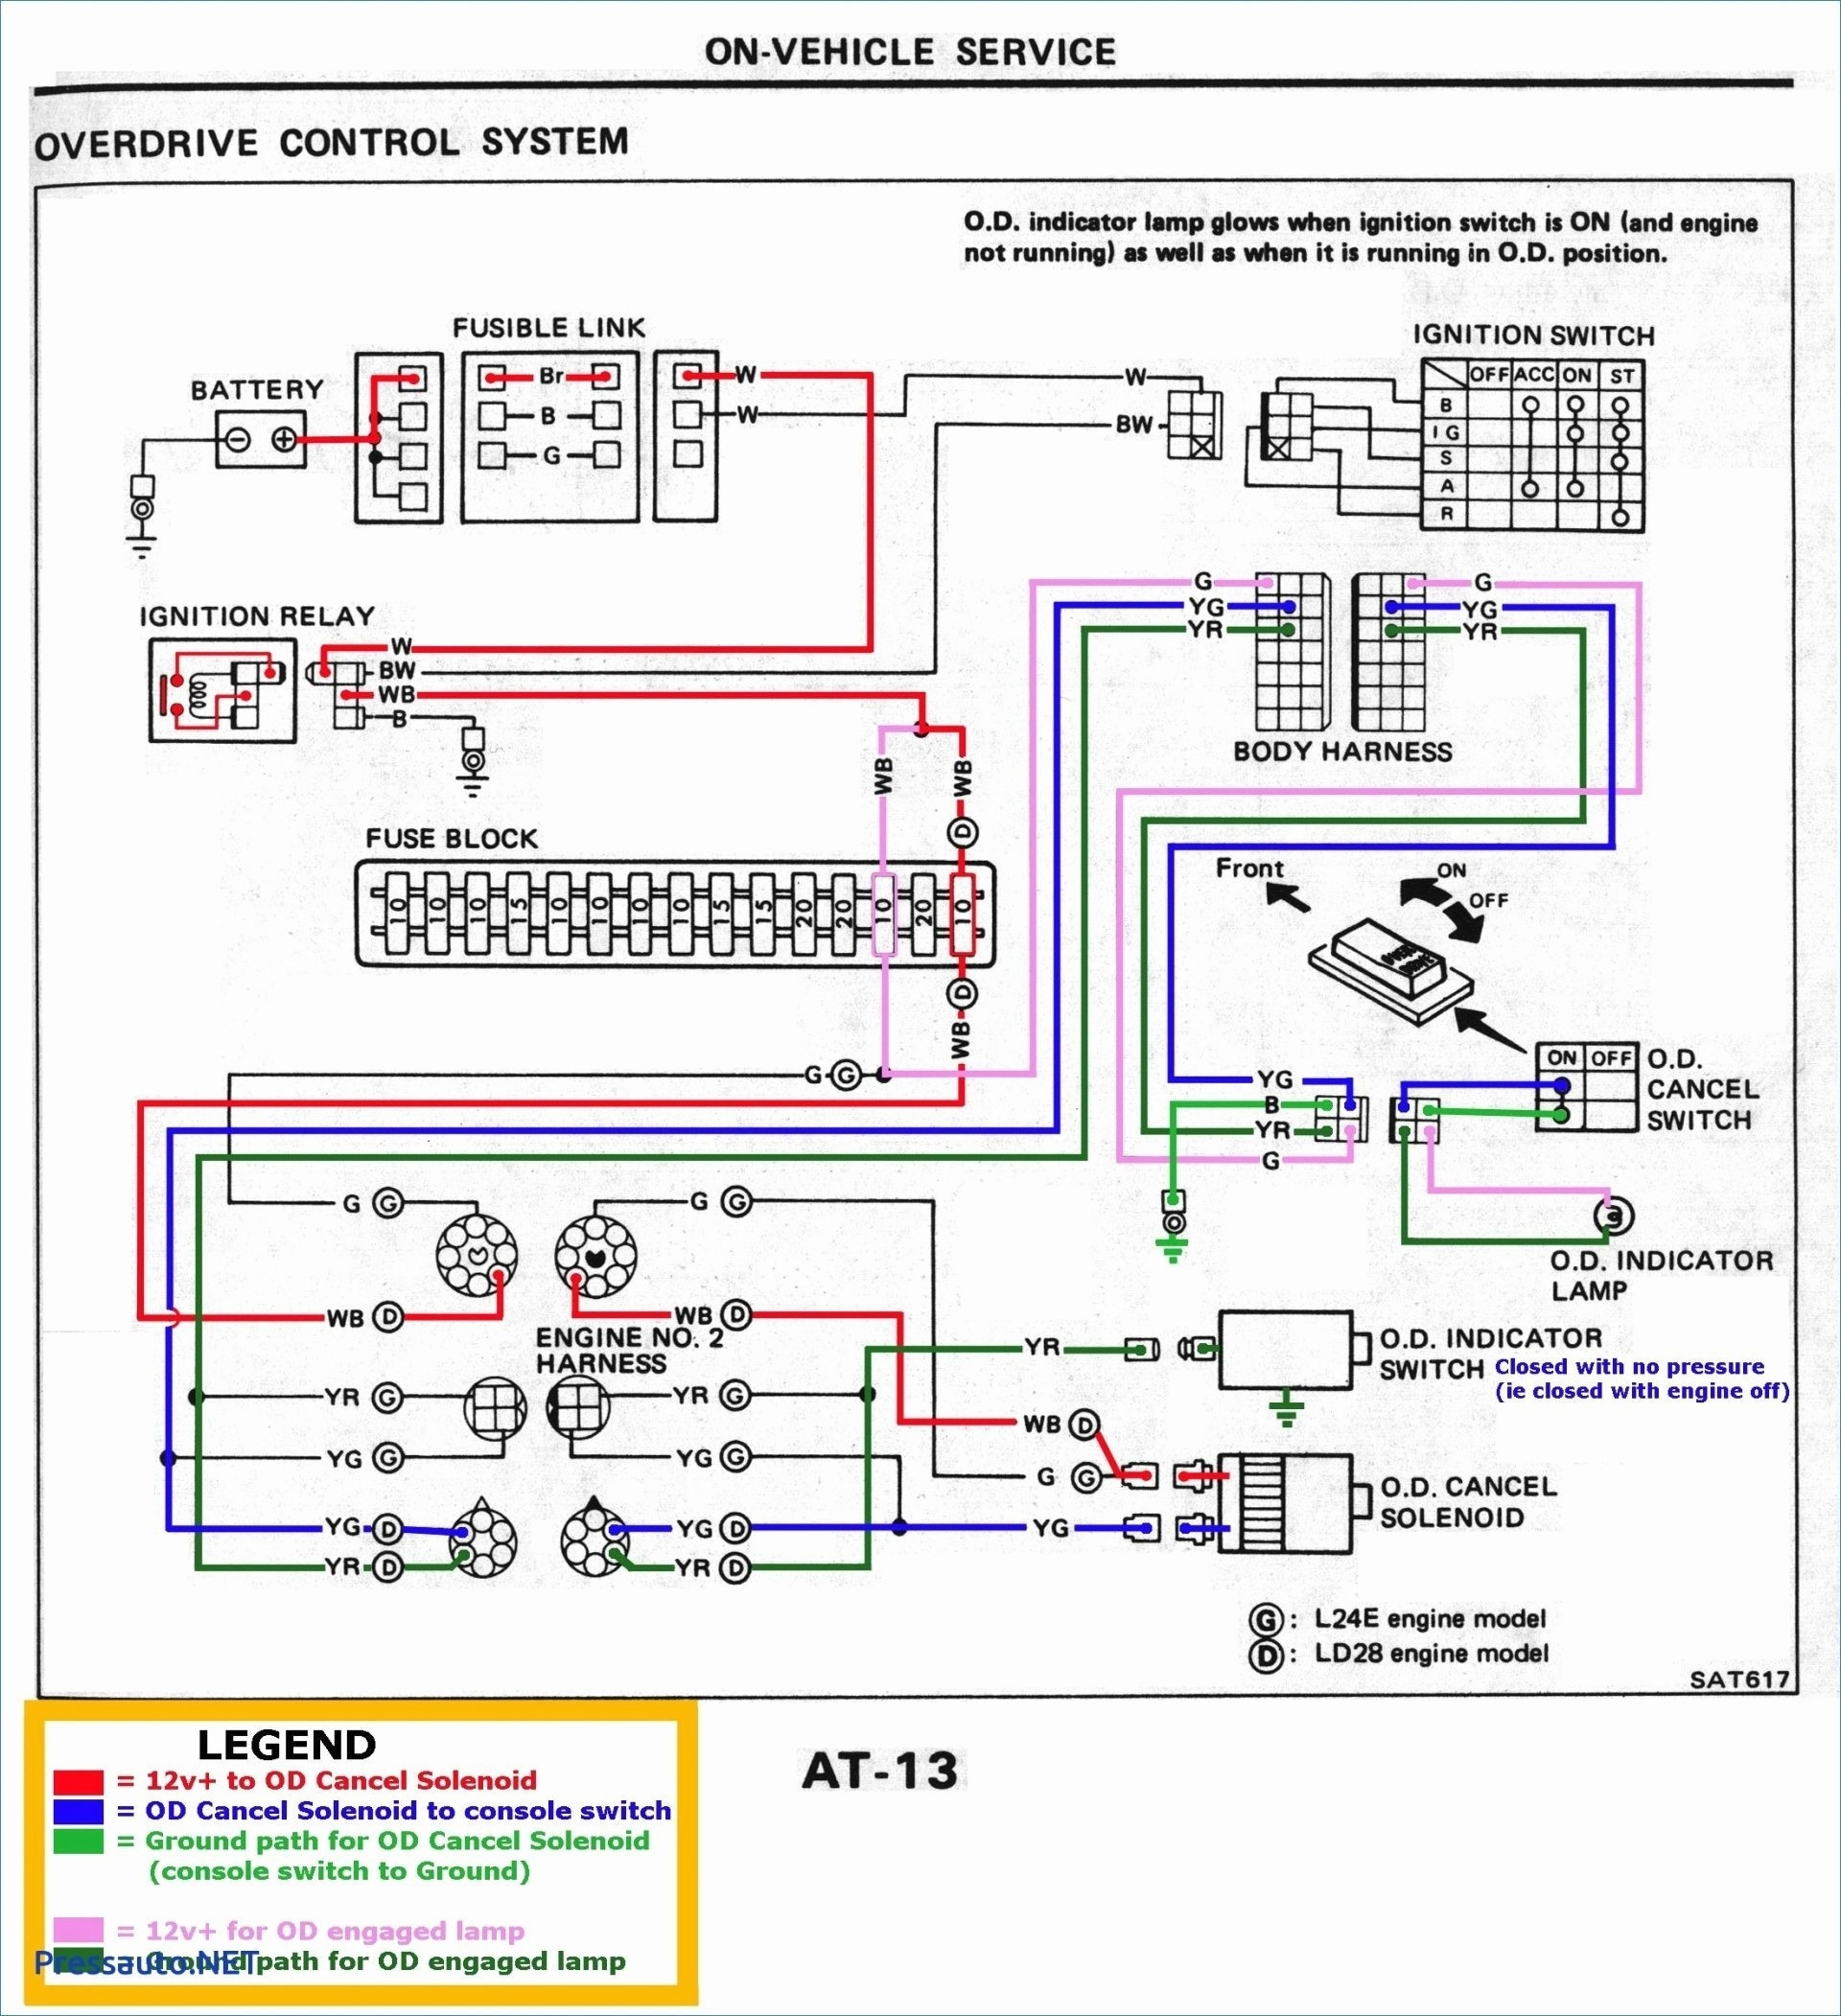 Mad Alternator Wiring Diagram For Chevy | Wiring Diagram on 2010 fusion radiator, 2010 fusion transmission diagram, 2010 fusion horn, 2010 fusion drive shaft, 2010 fusion fuse diagram, 2010 fusion headlights, 2010 fusion belt diagram, 2010 fusion wiper motor, 2010 fusion engine, 2010 fusion lighting, 2010 fusion suspension,